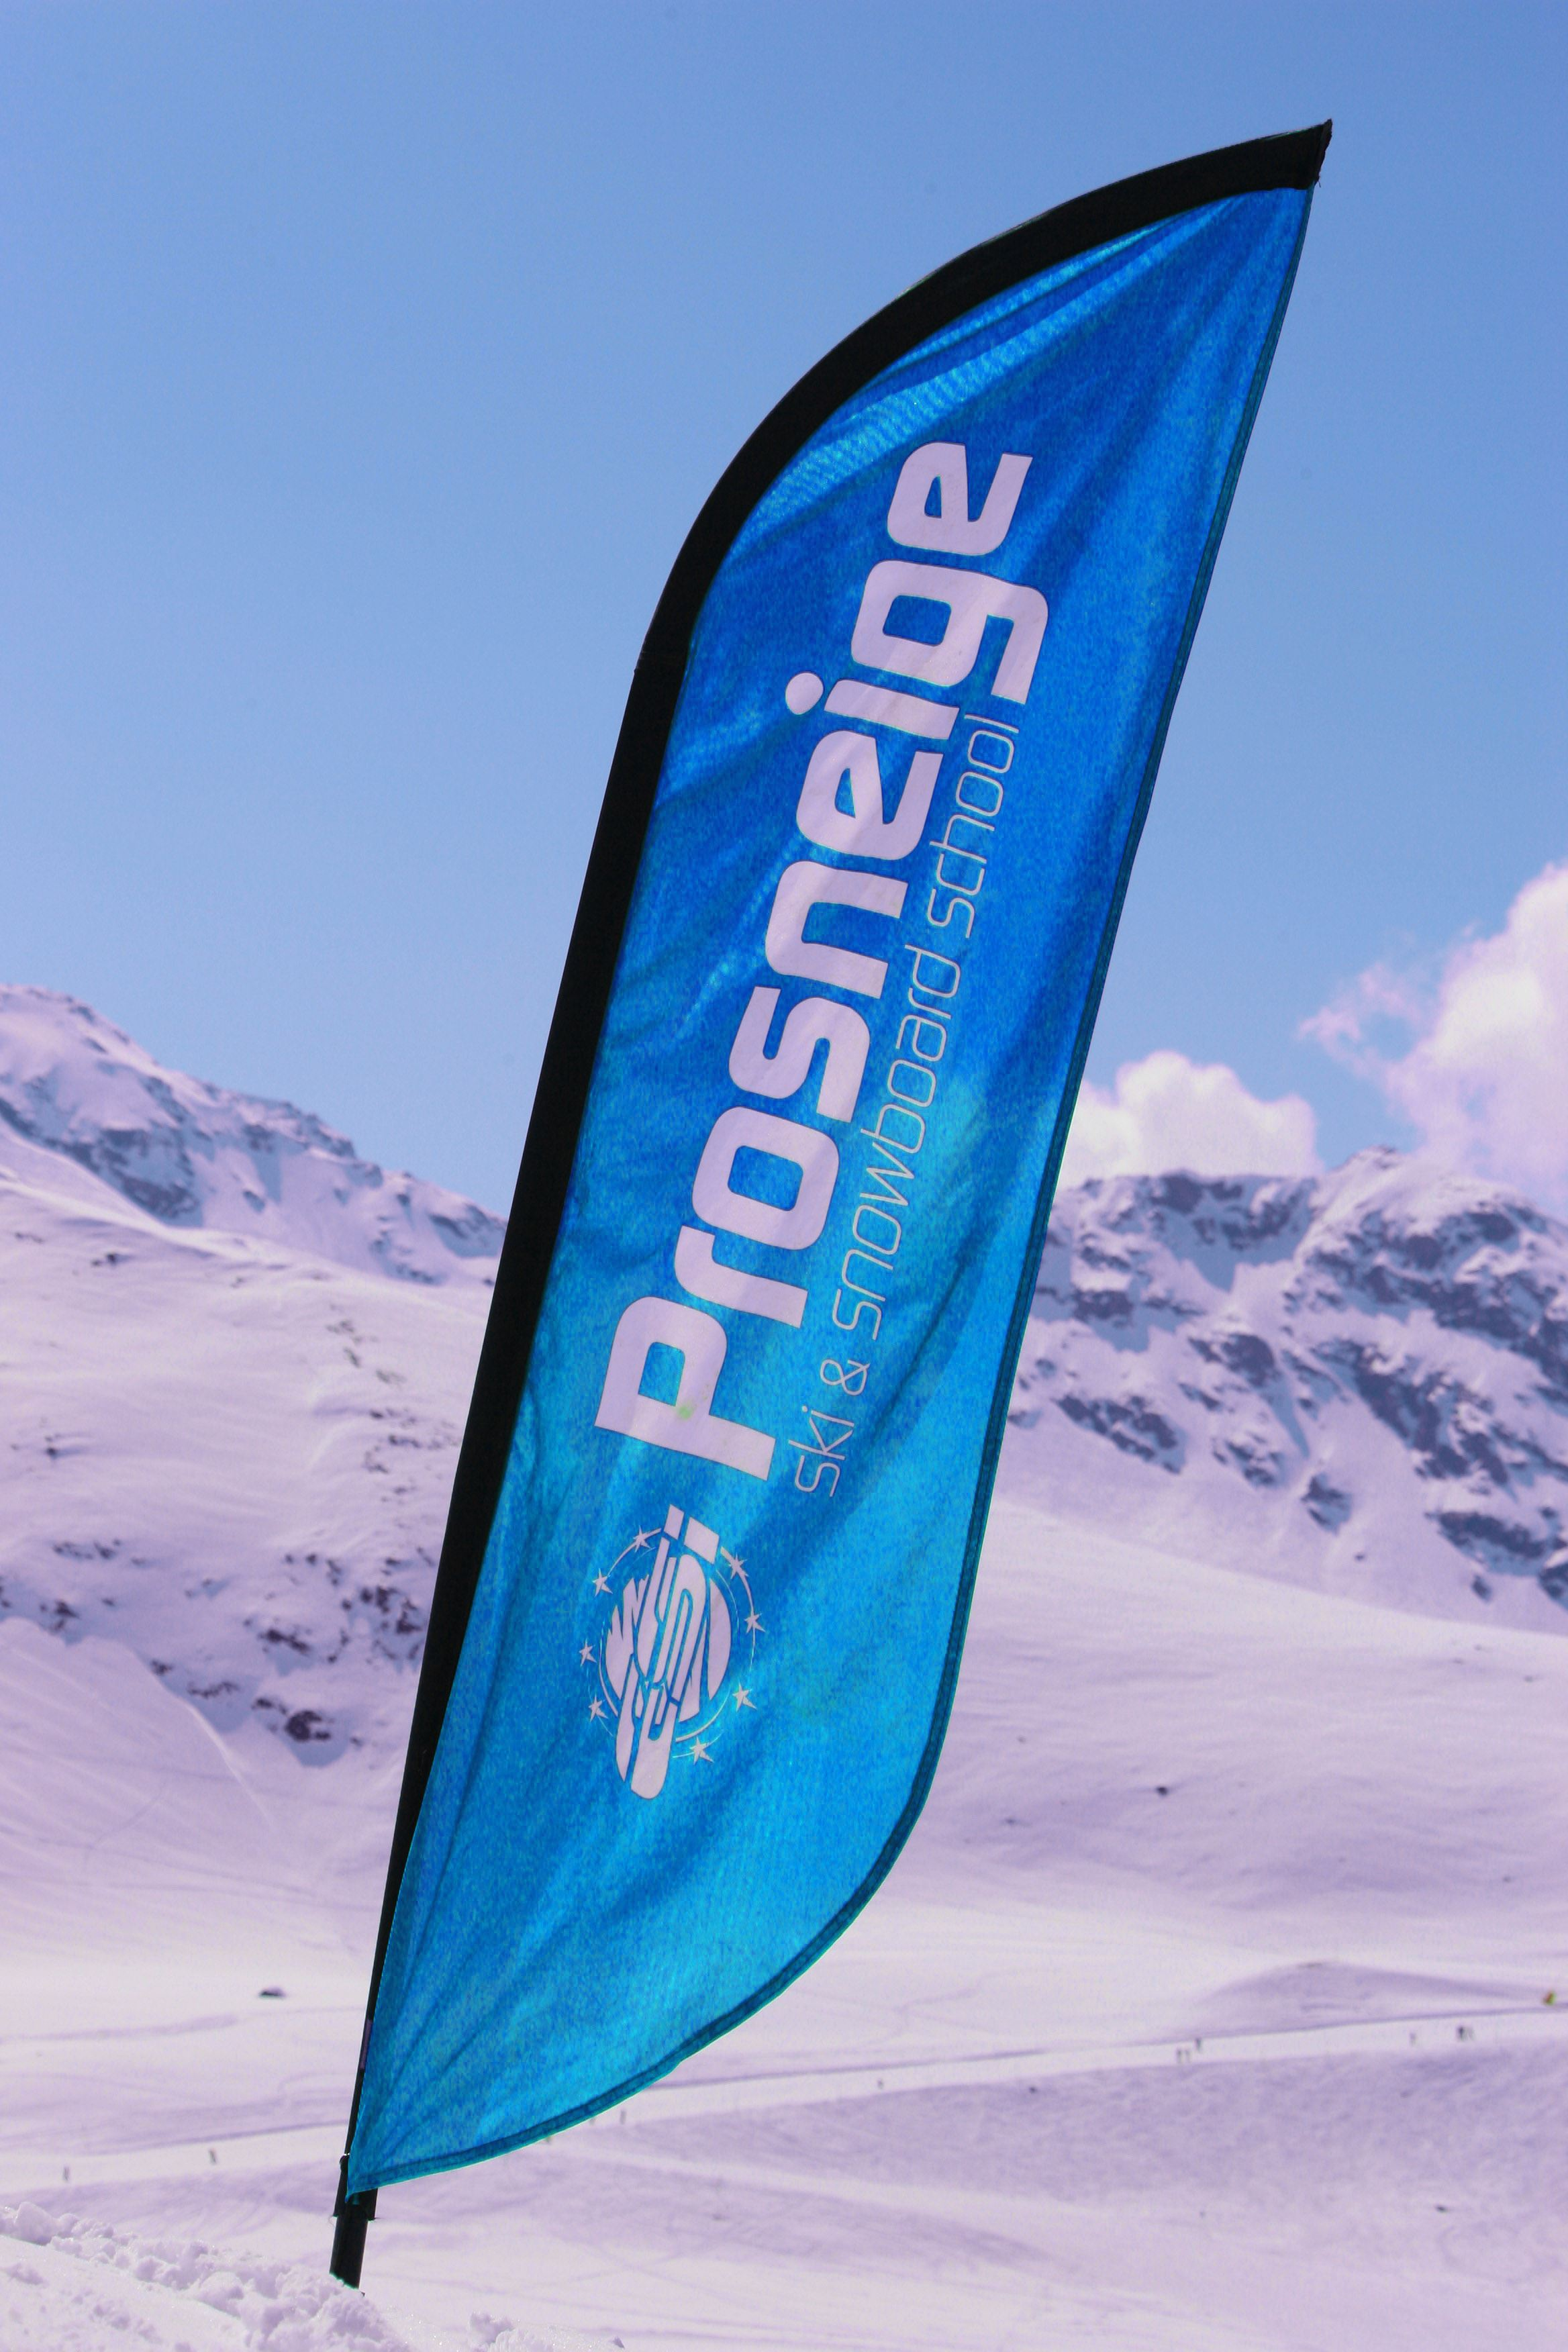 PROSNEIGE SKI SCHOOL - Full days group lessons without lunch